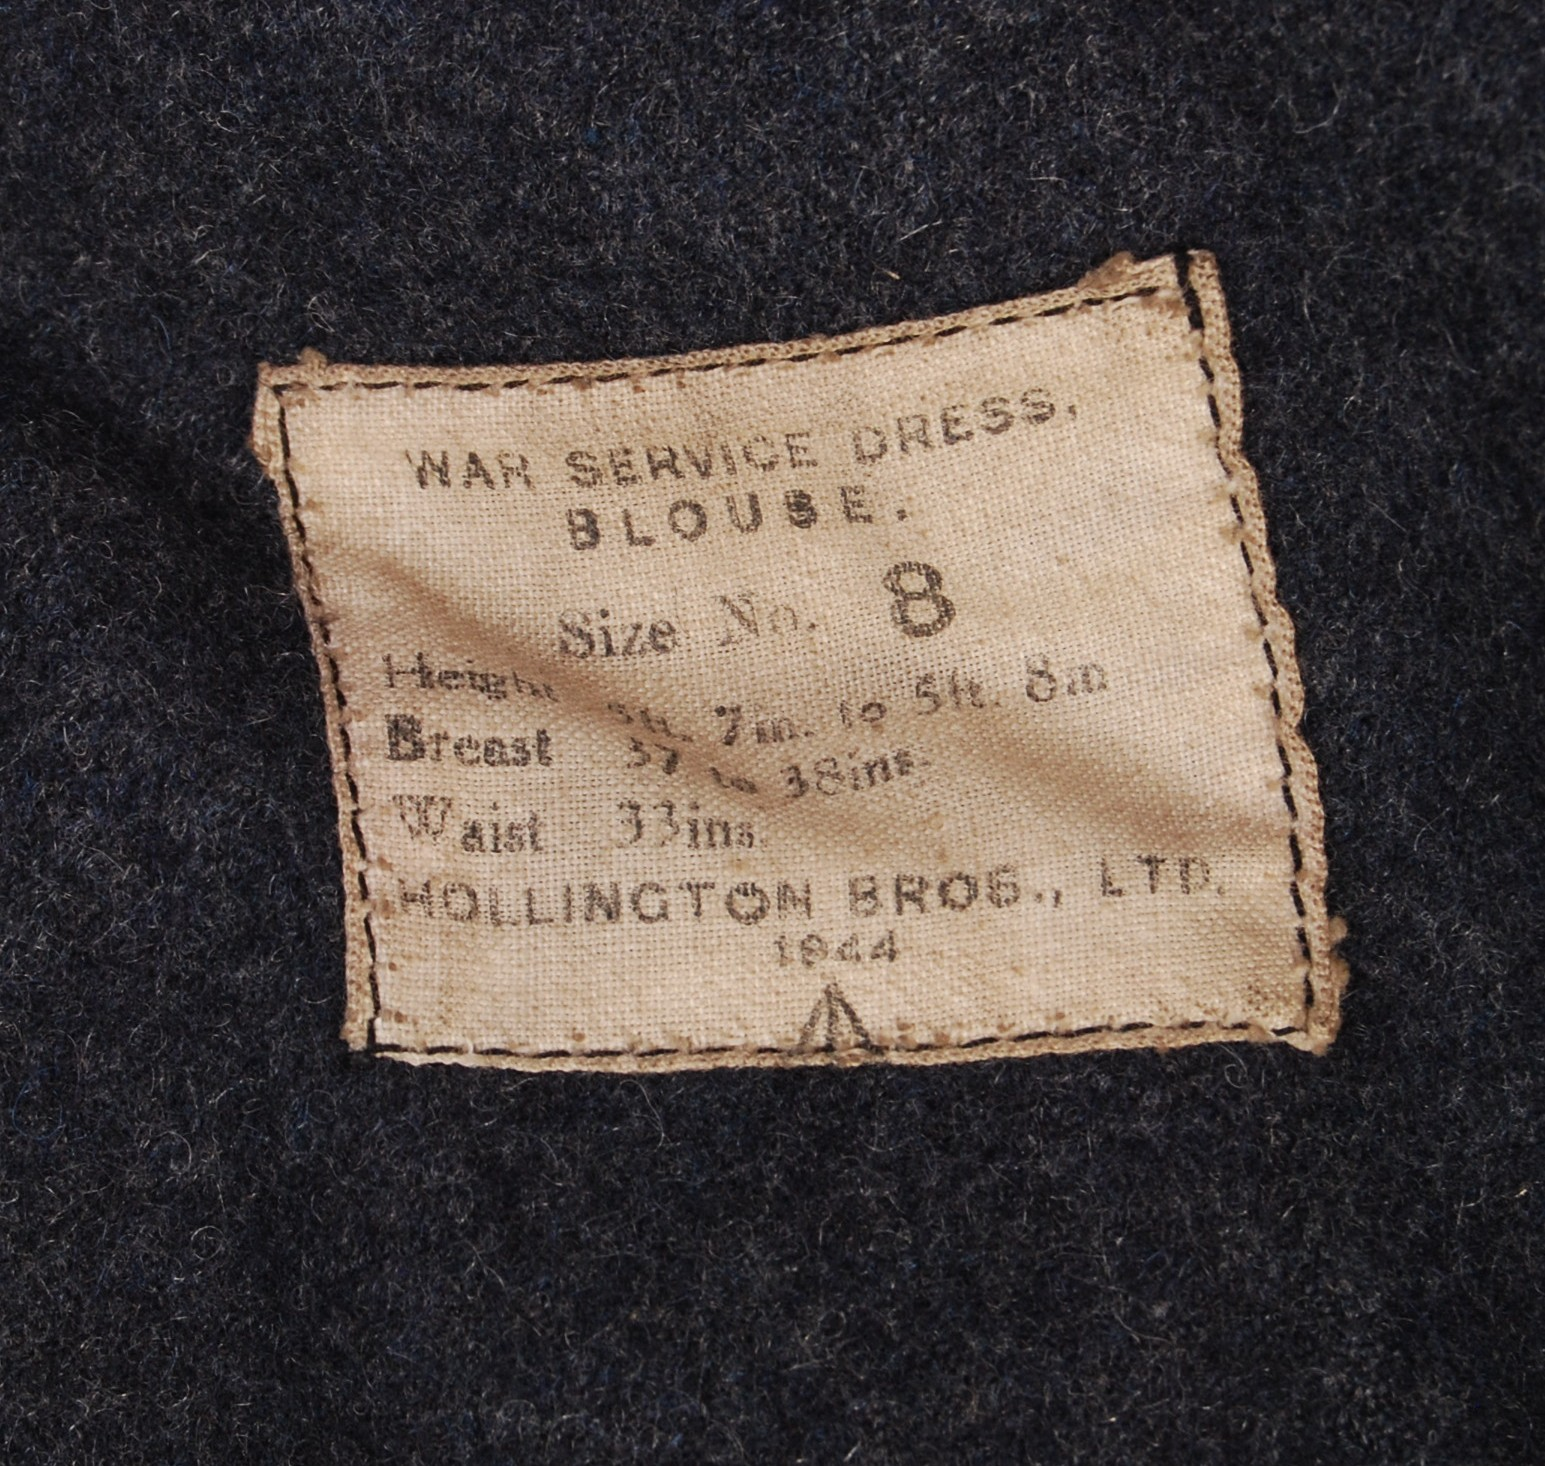 RARE UNIQUE ARCHIVE OF WWII RAF BOMBER COMMAND ITE - Image 32 of 32